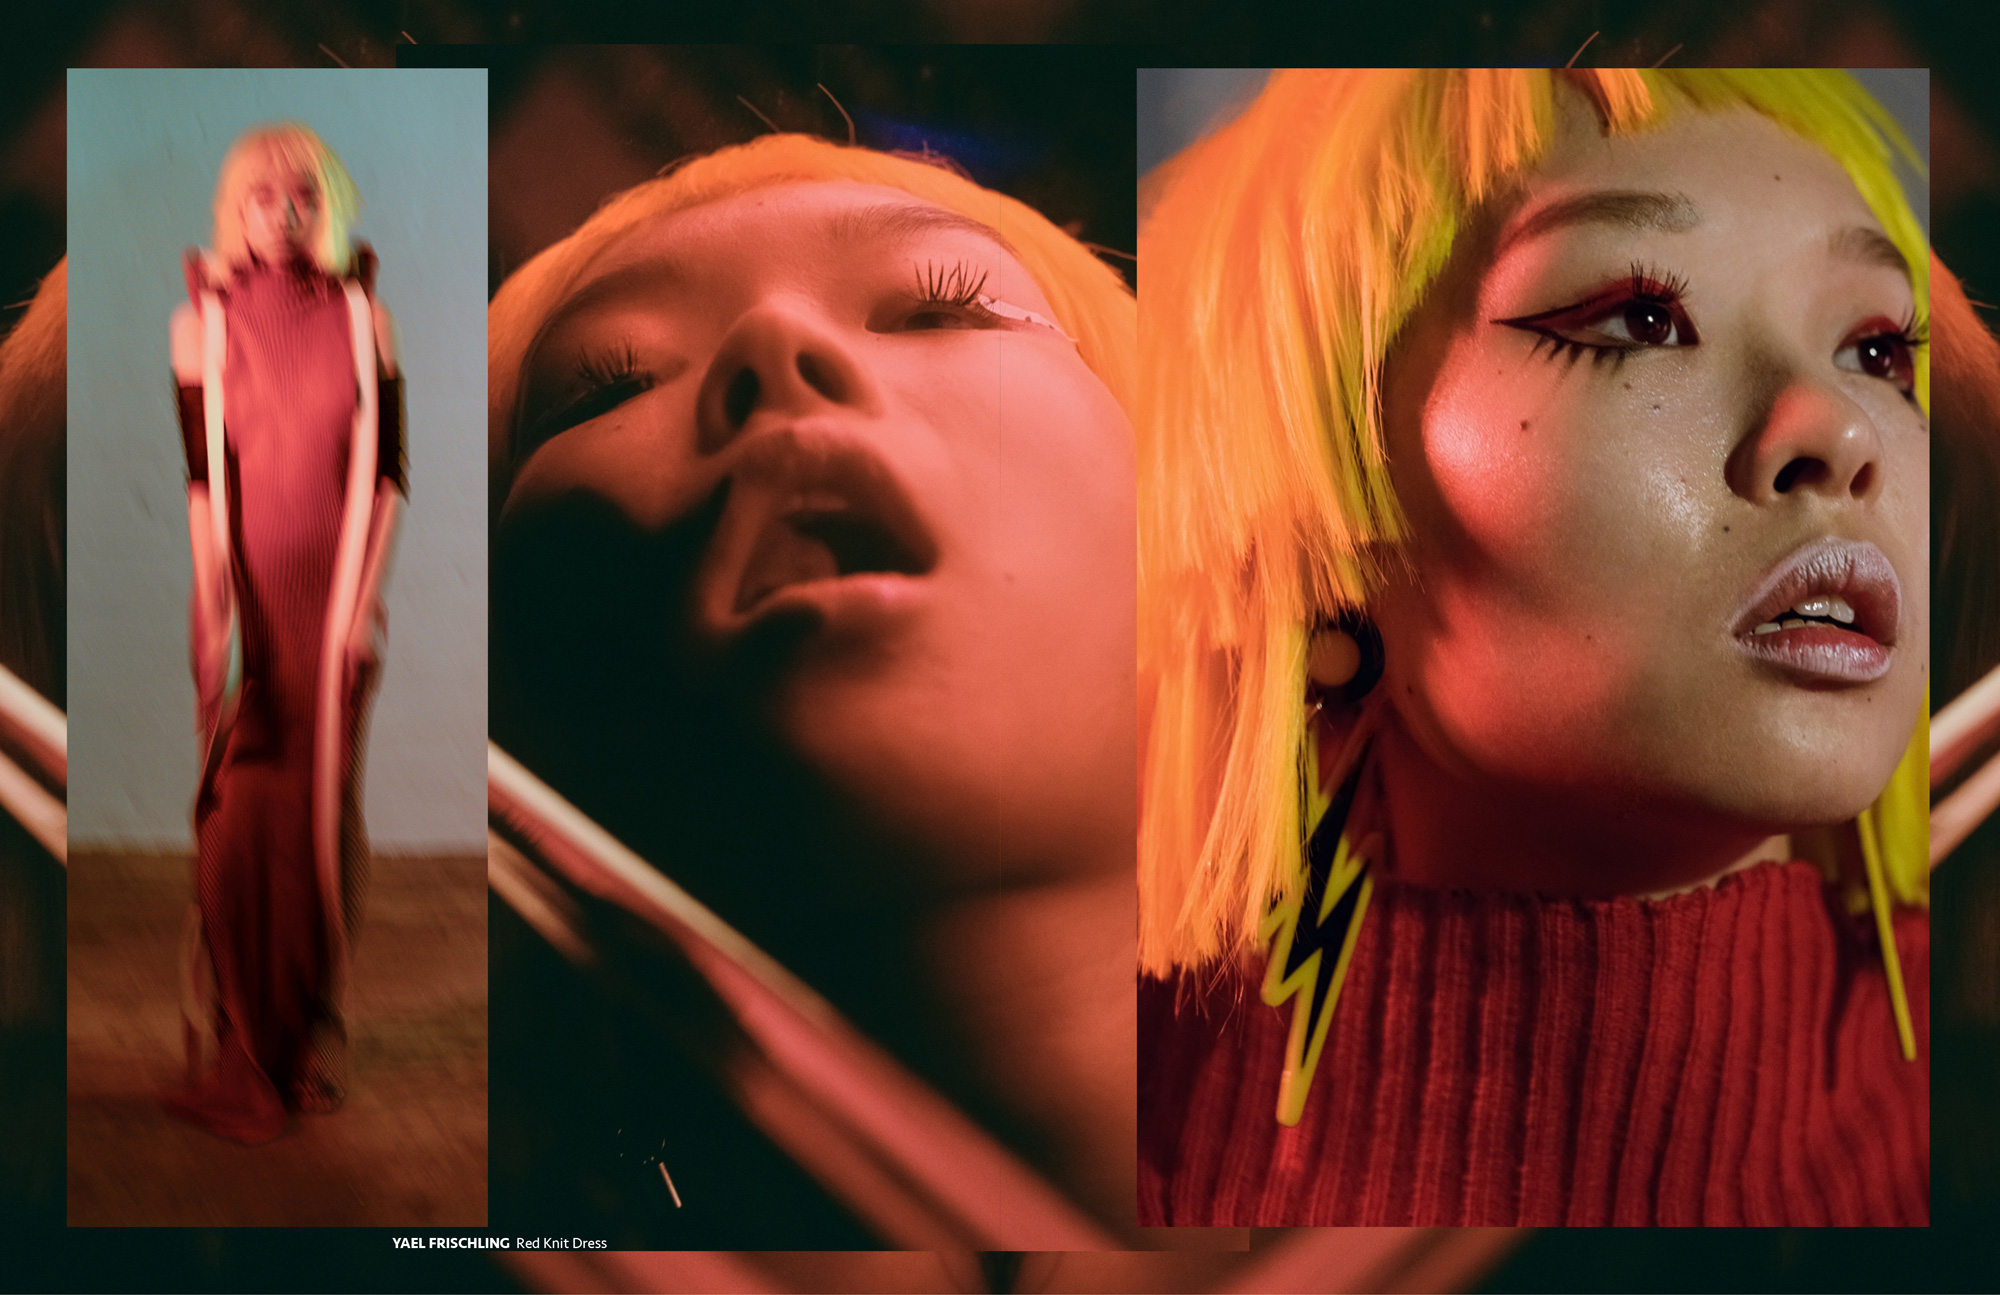 Cindy Wang wears Yael Frischling in GRAPHIC CONTENT Asian grunge aesthetic fashion editorial